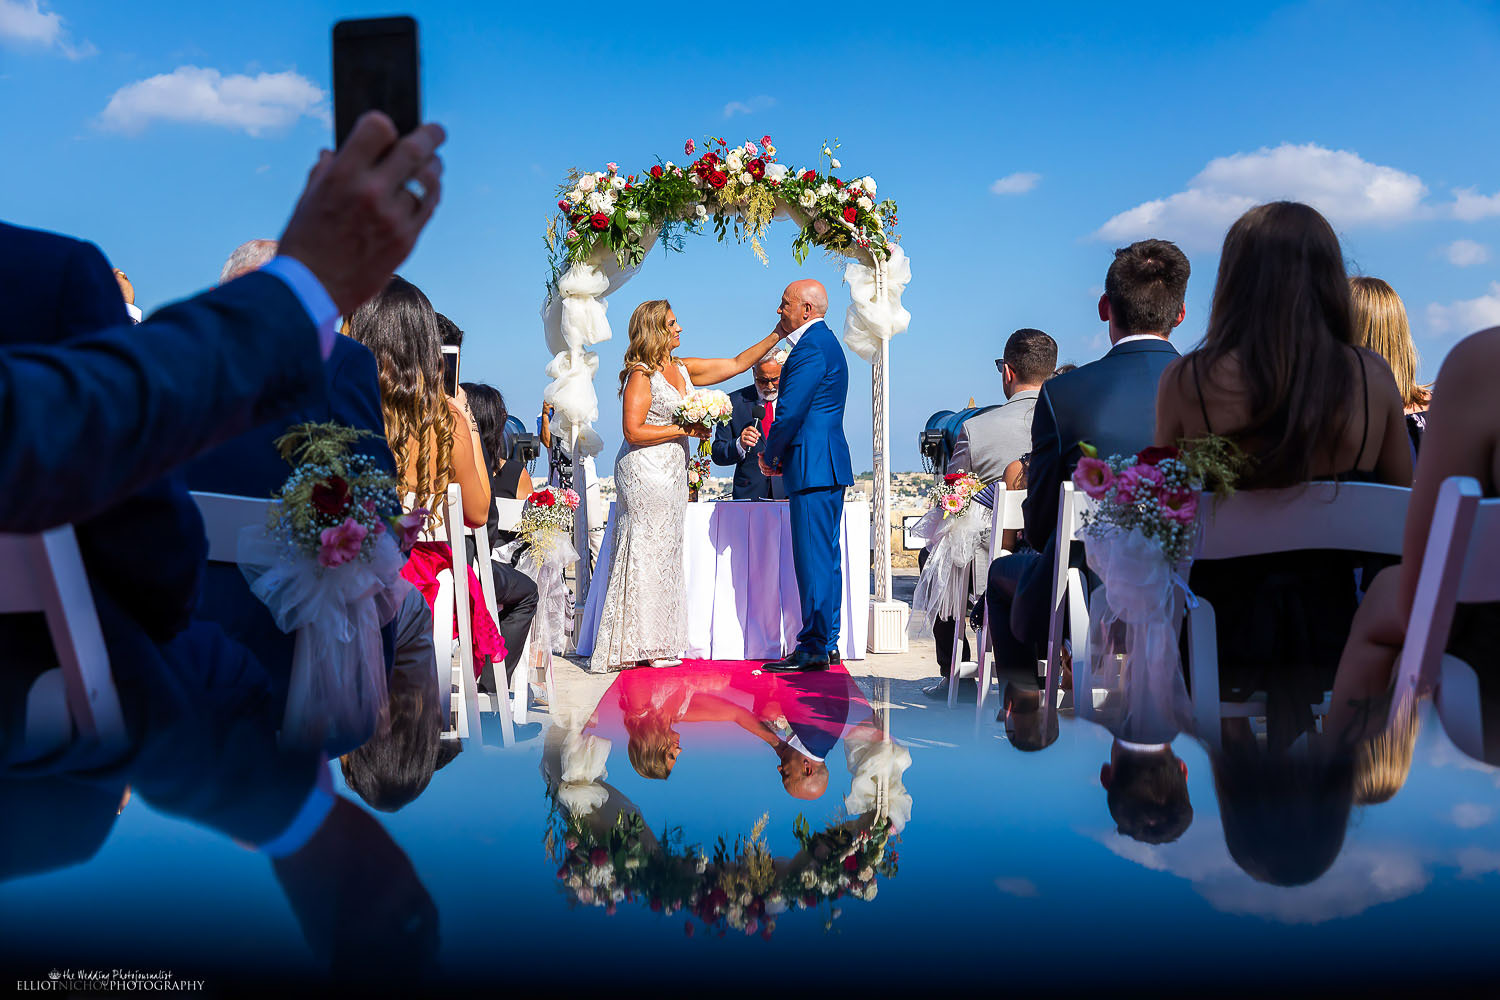 Mature couple say their vows during an outdoor civil ceremony.Photo by North East based wedding Photographer Elliot Nichol. Capturing weddings throughout the UK and the EU.